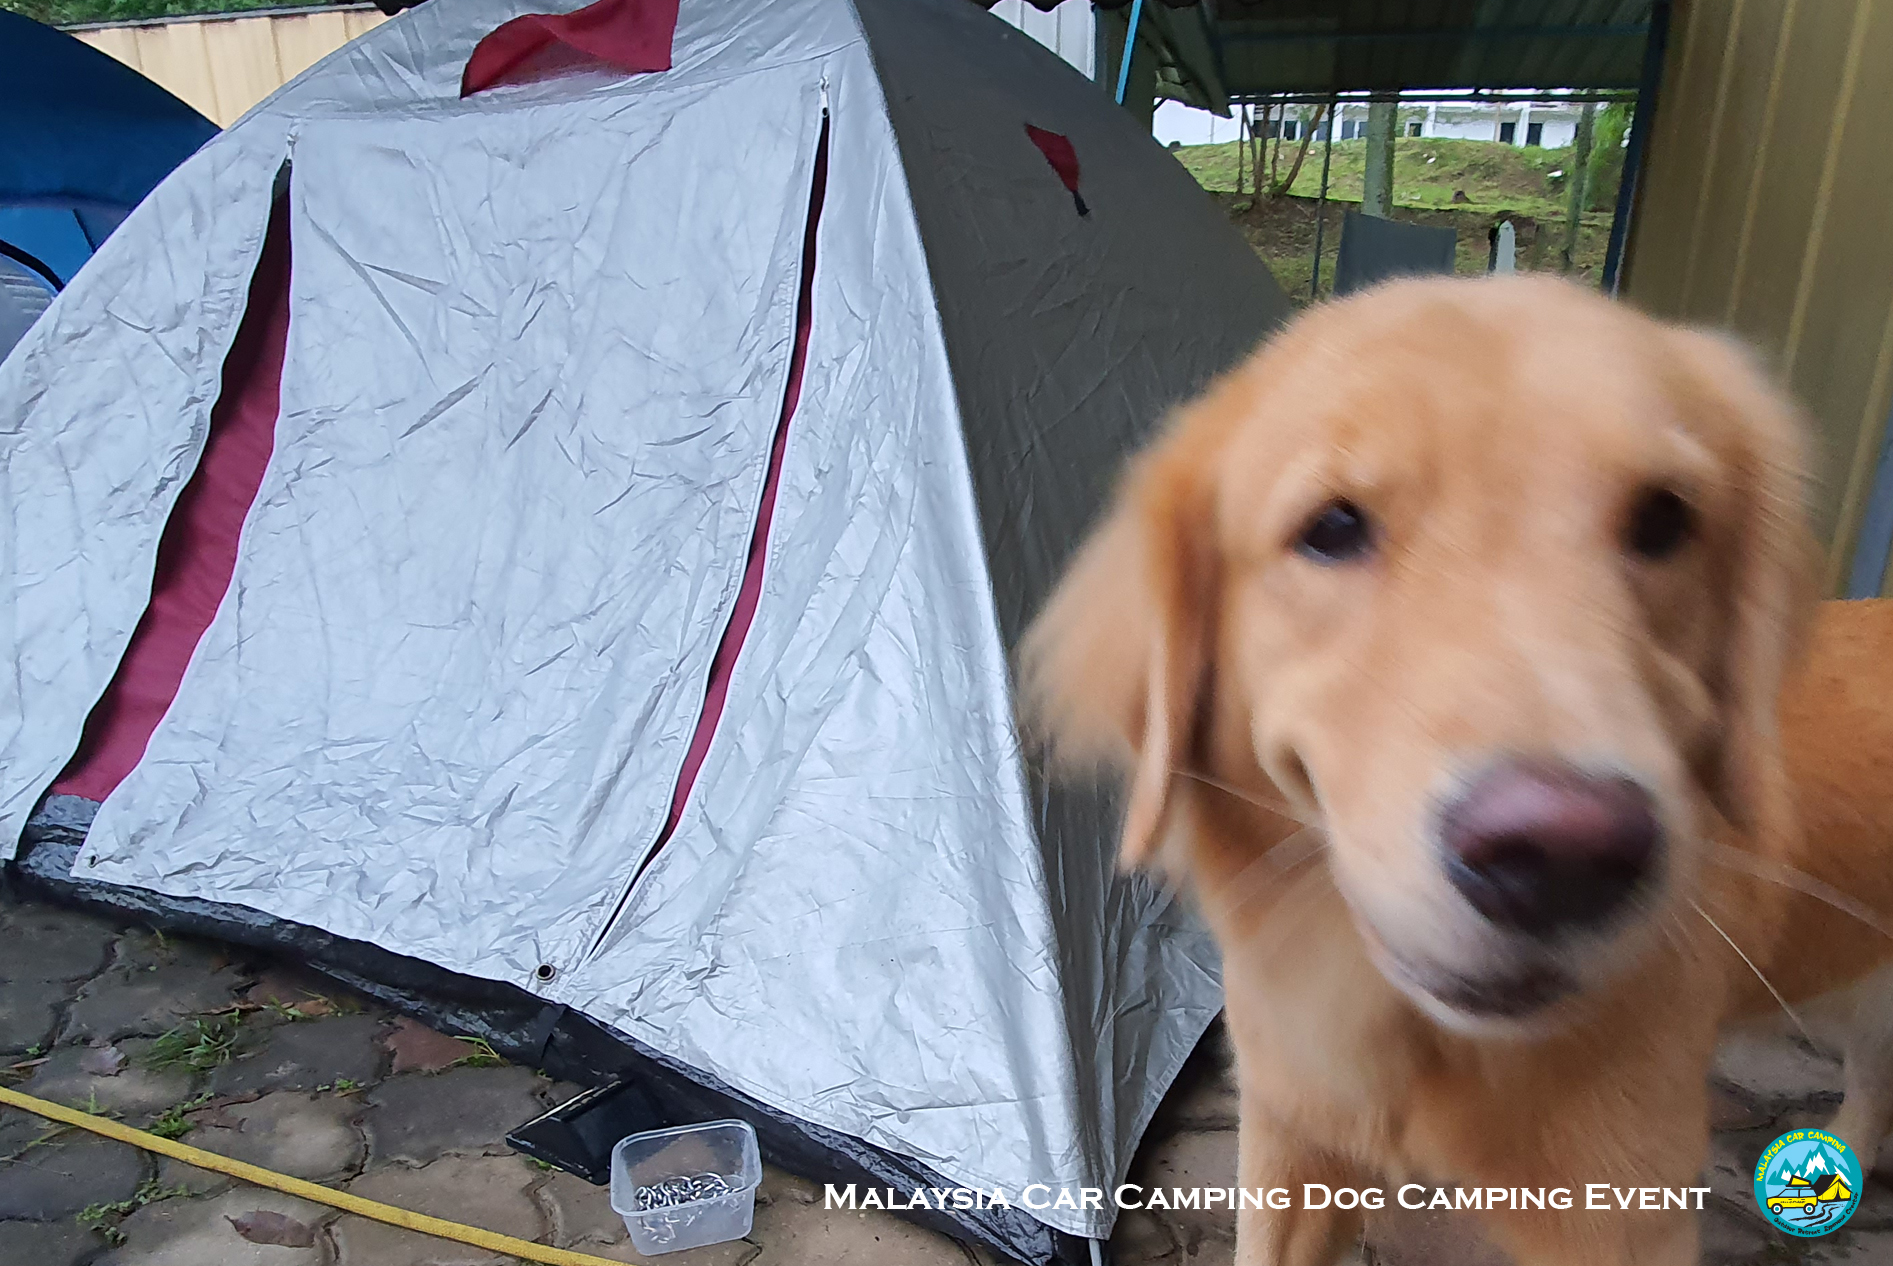 dog_camping_event_dog_lover_selangor_camping_site_malaysia_car_camping_private_event_organizer-3